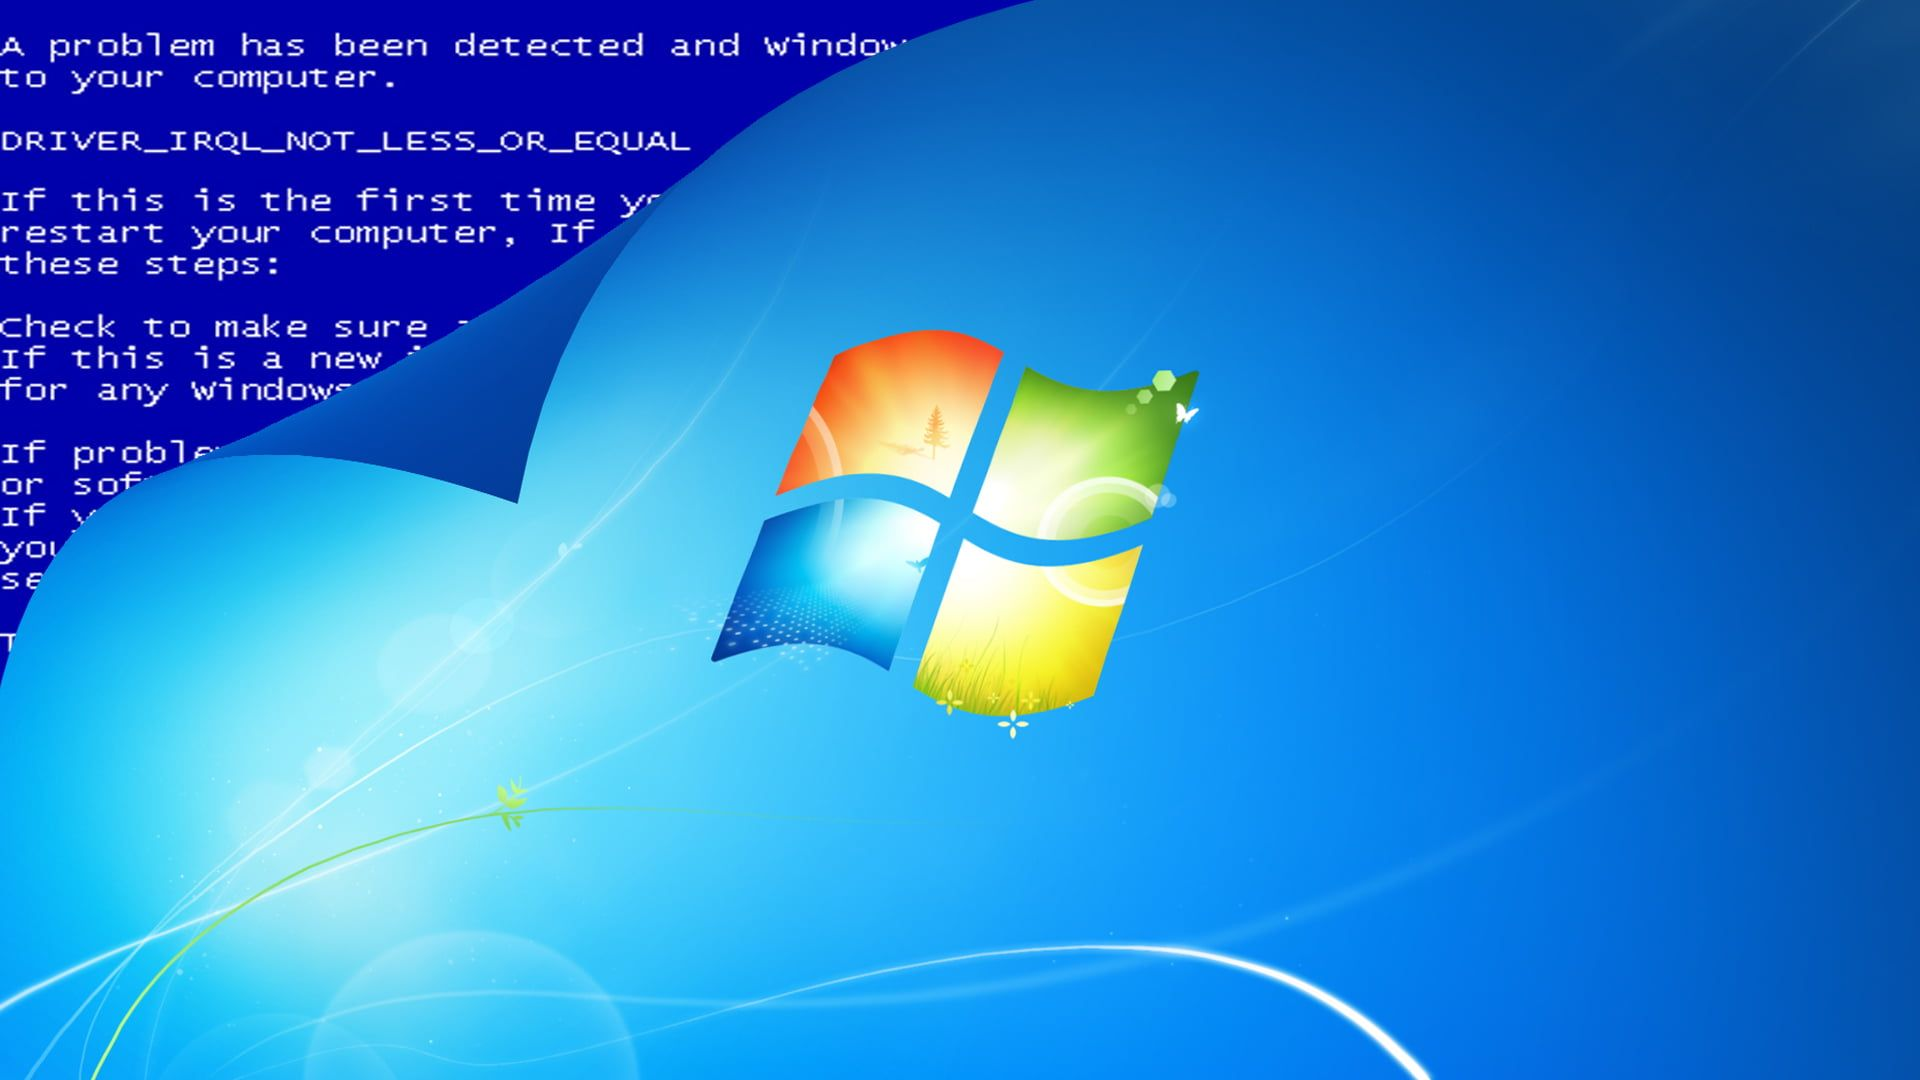 Yellow And Blue Led Light Digital Art Simple Background Text Windows 7 Logo Windows Errors Blue Backgroun Funny Wallpaper Simple Backgrounds Funny Wallpapers